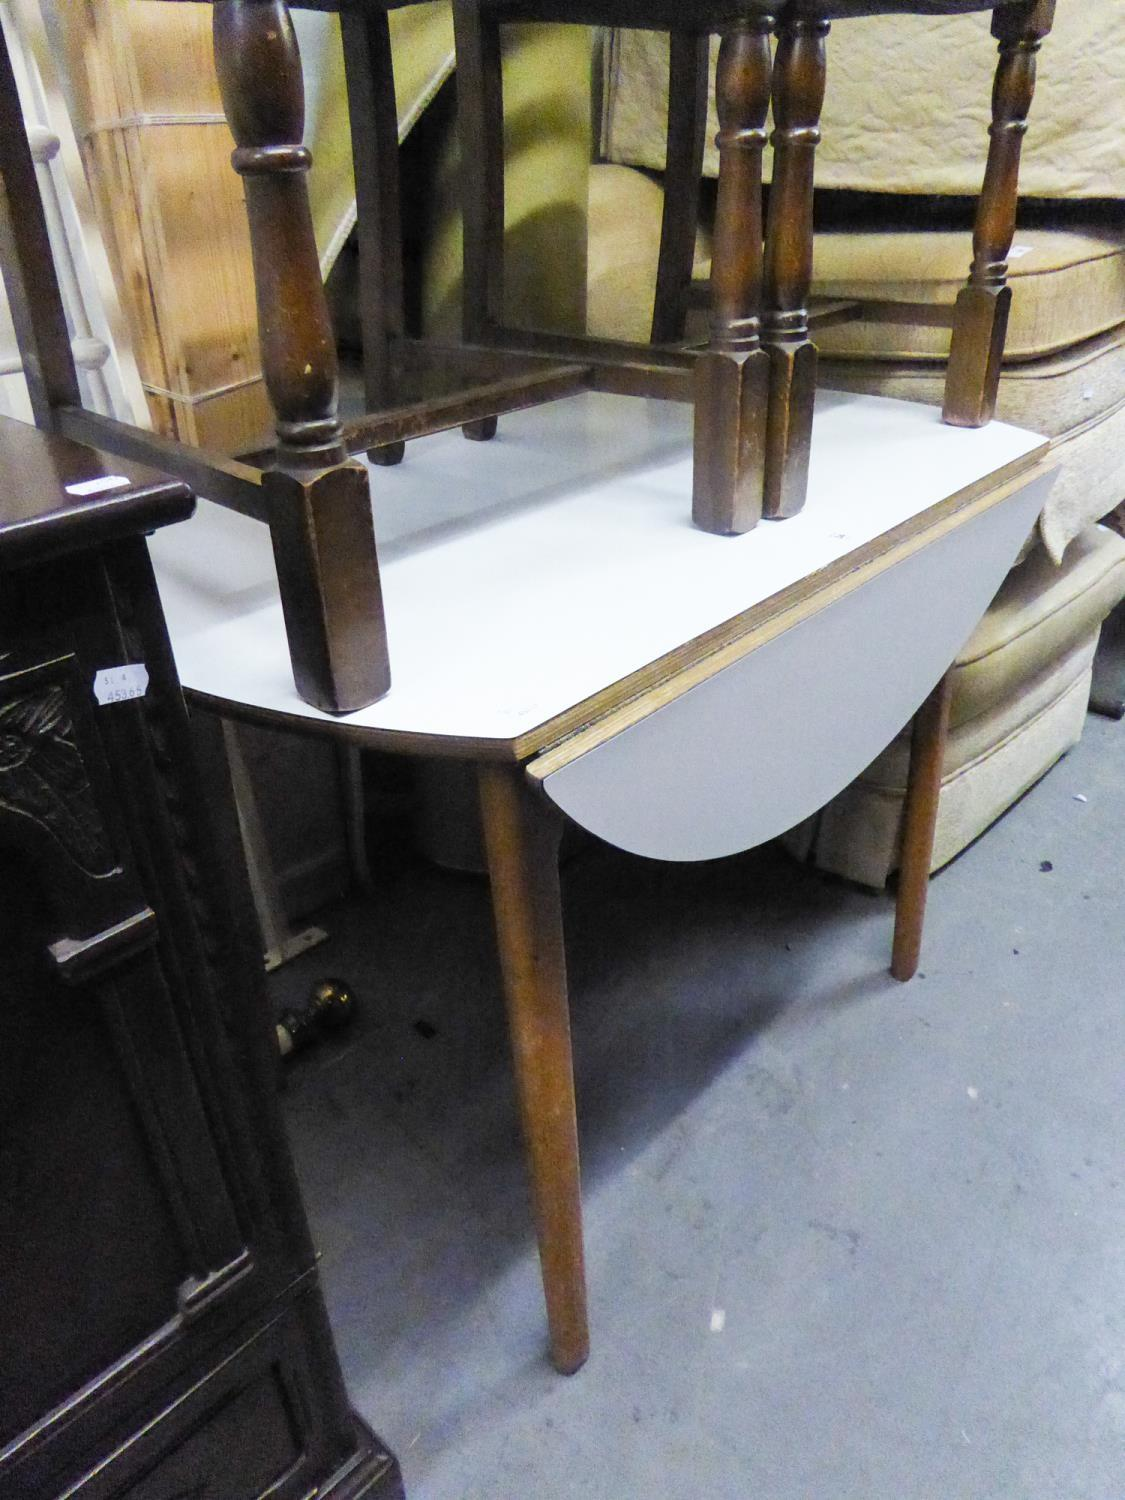 Lot 34 - DROP LEAF KITCHEN DINING TABLE HAVING FORMICA TOP